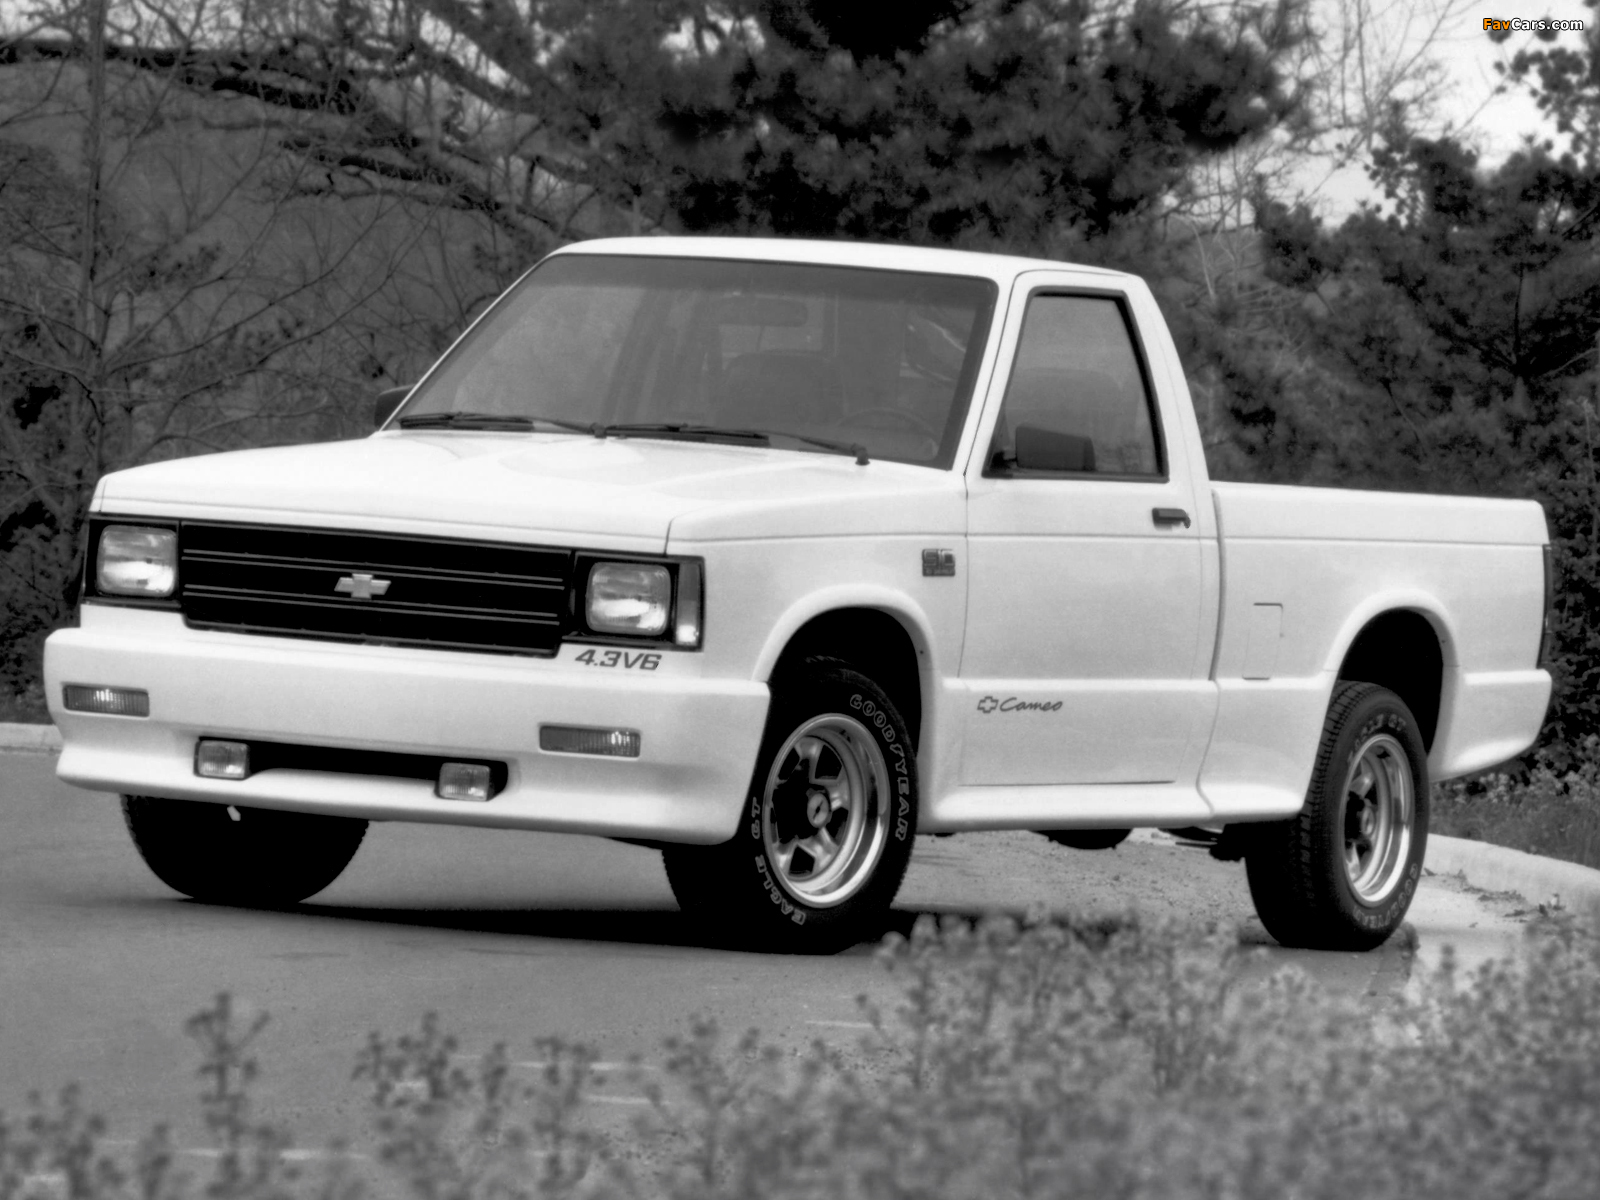 Chevrolet S 10 Cameo 1989 91 Images 1600x1200